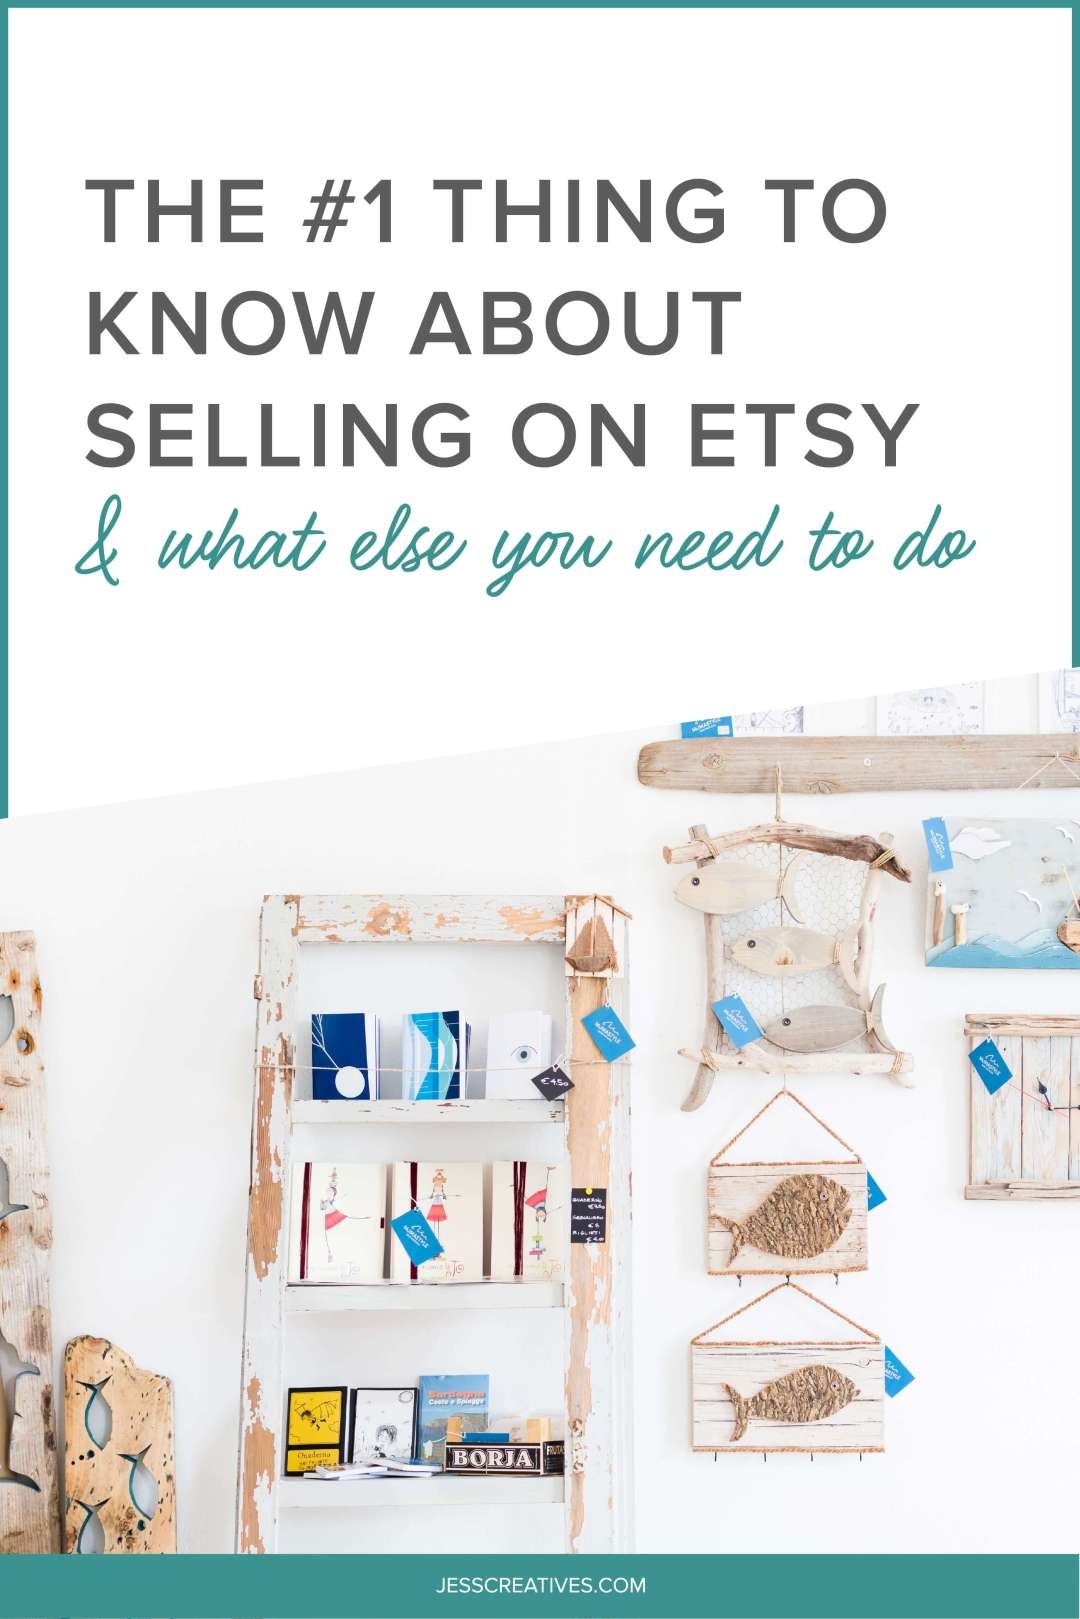 The #1 Thing To Know About Selling On Etsy